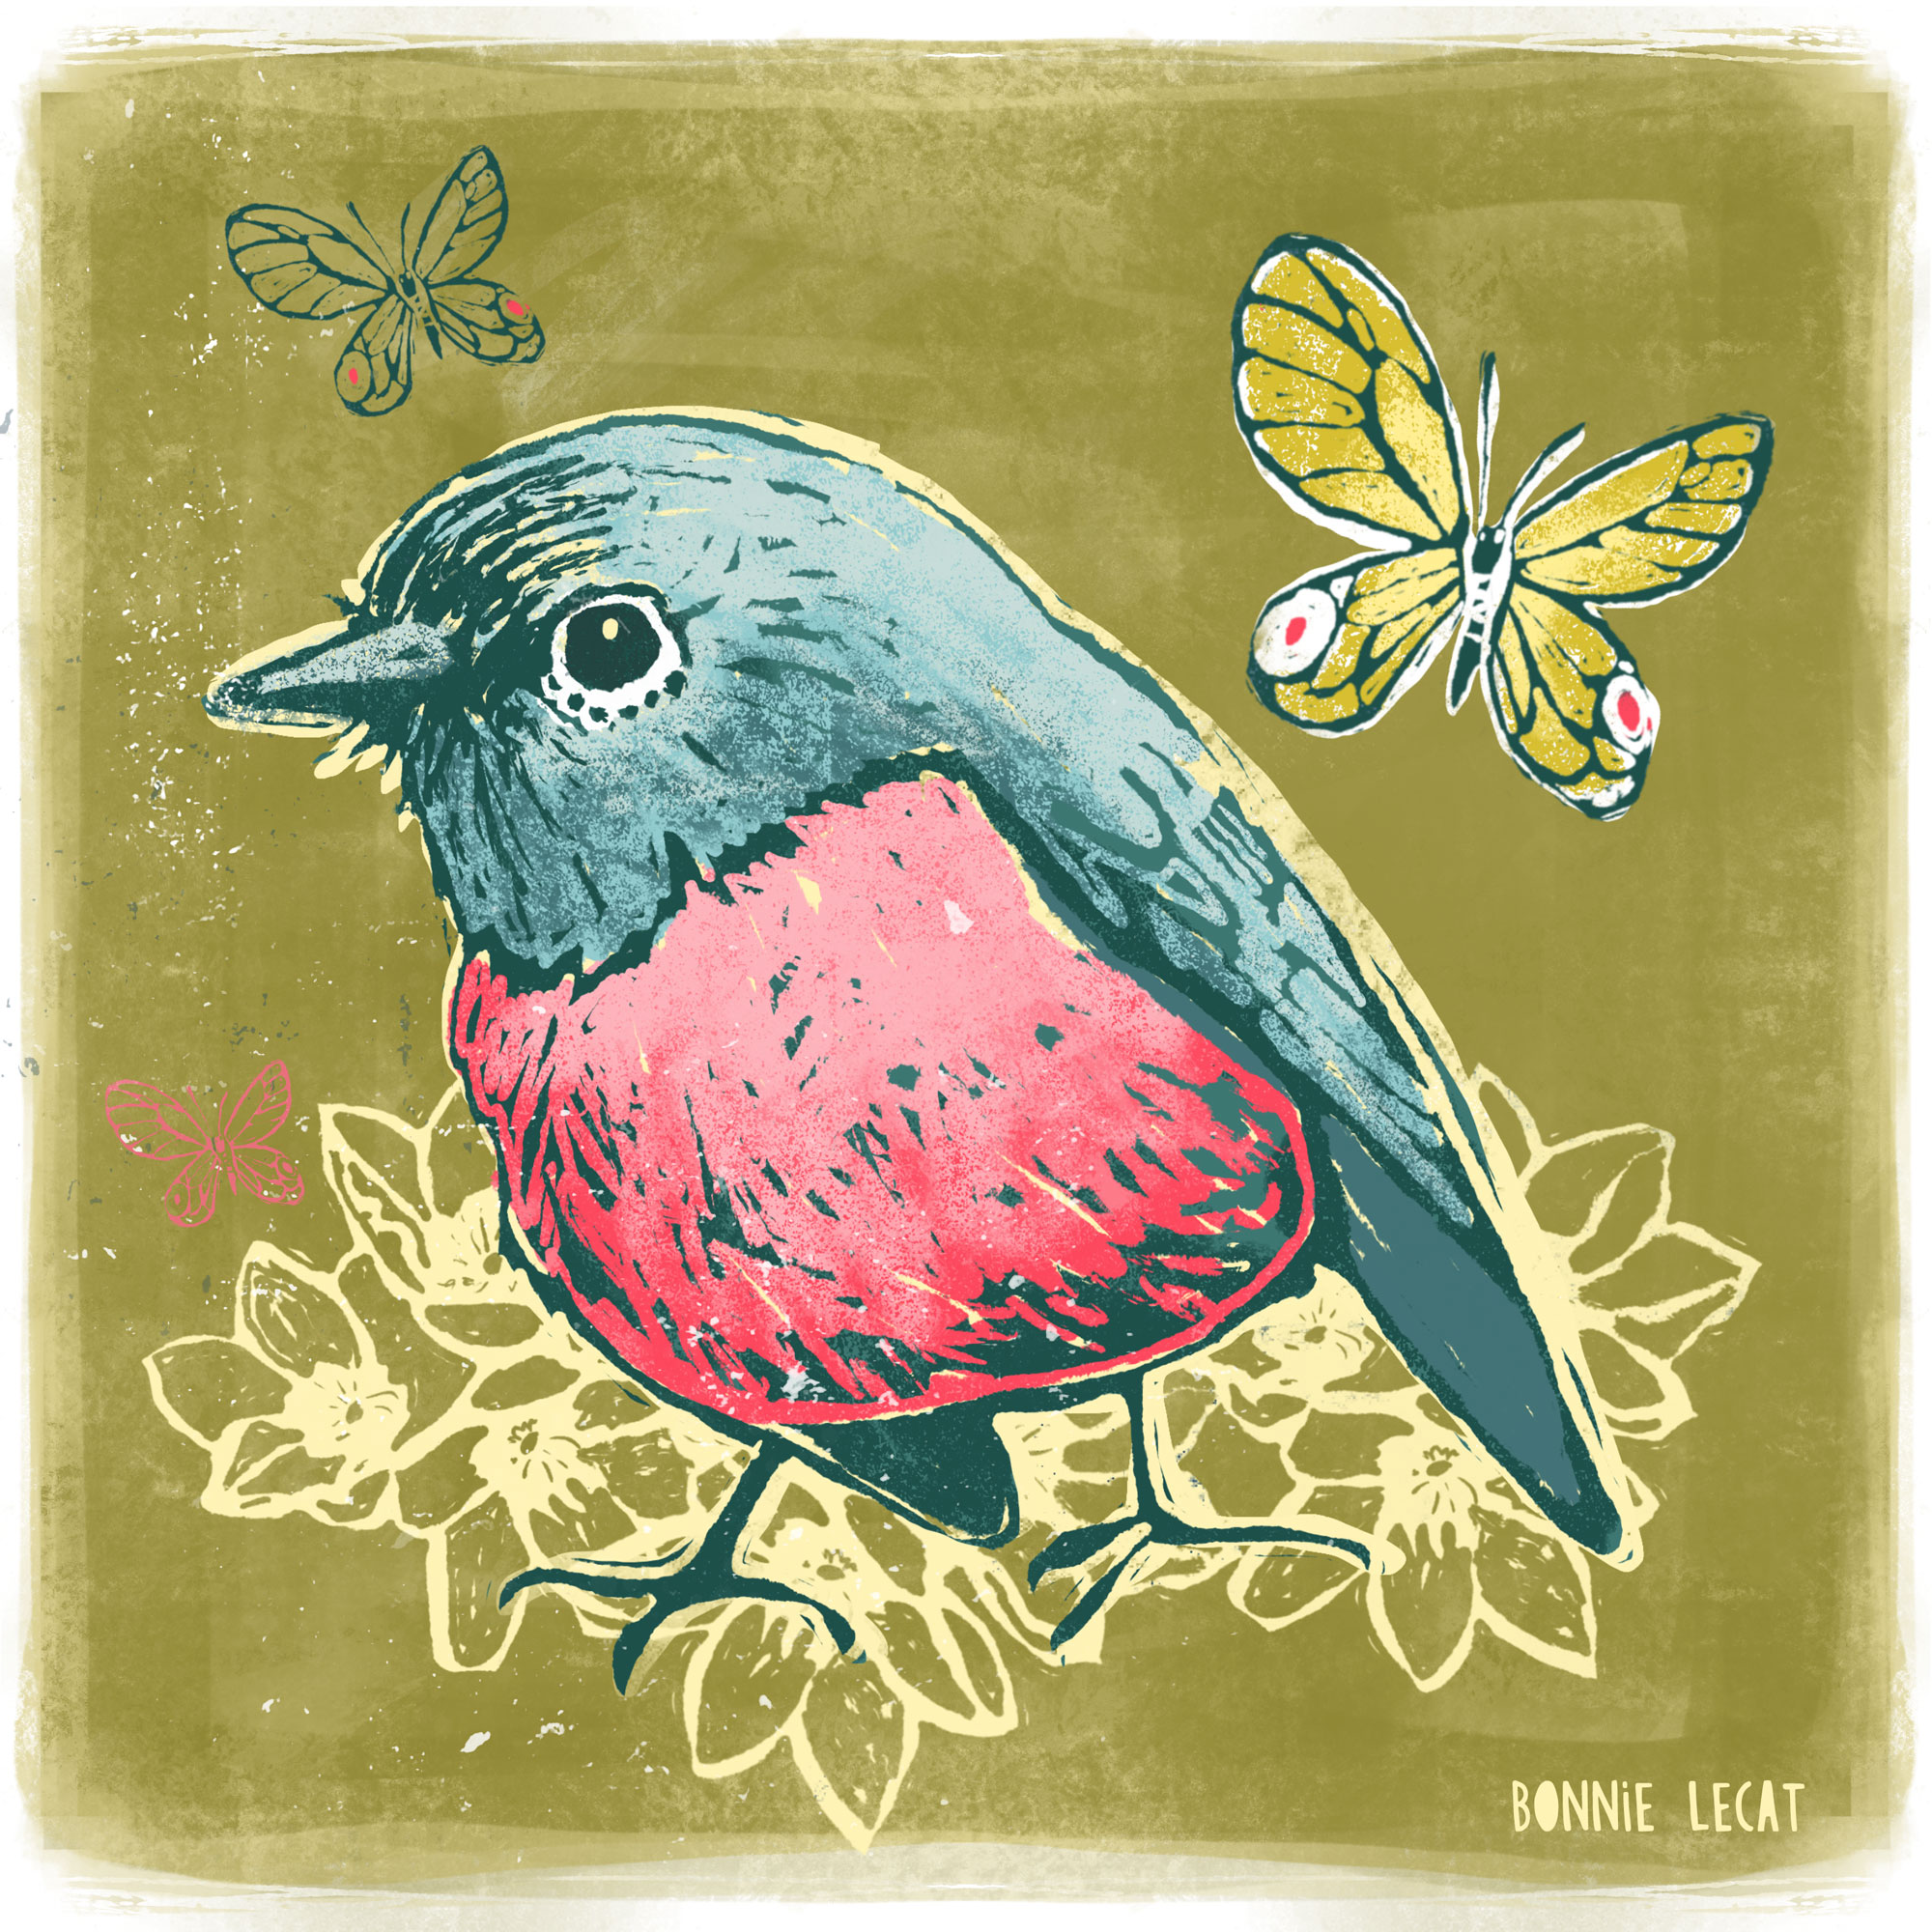 Birds and butterflies digital illustration by Bonnie Lecat.